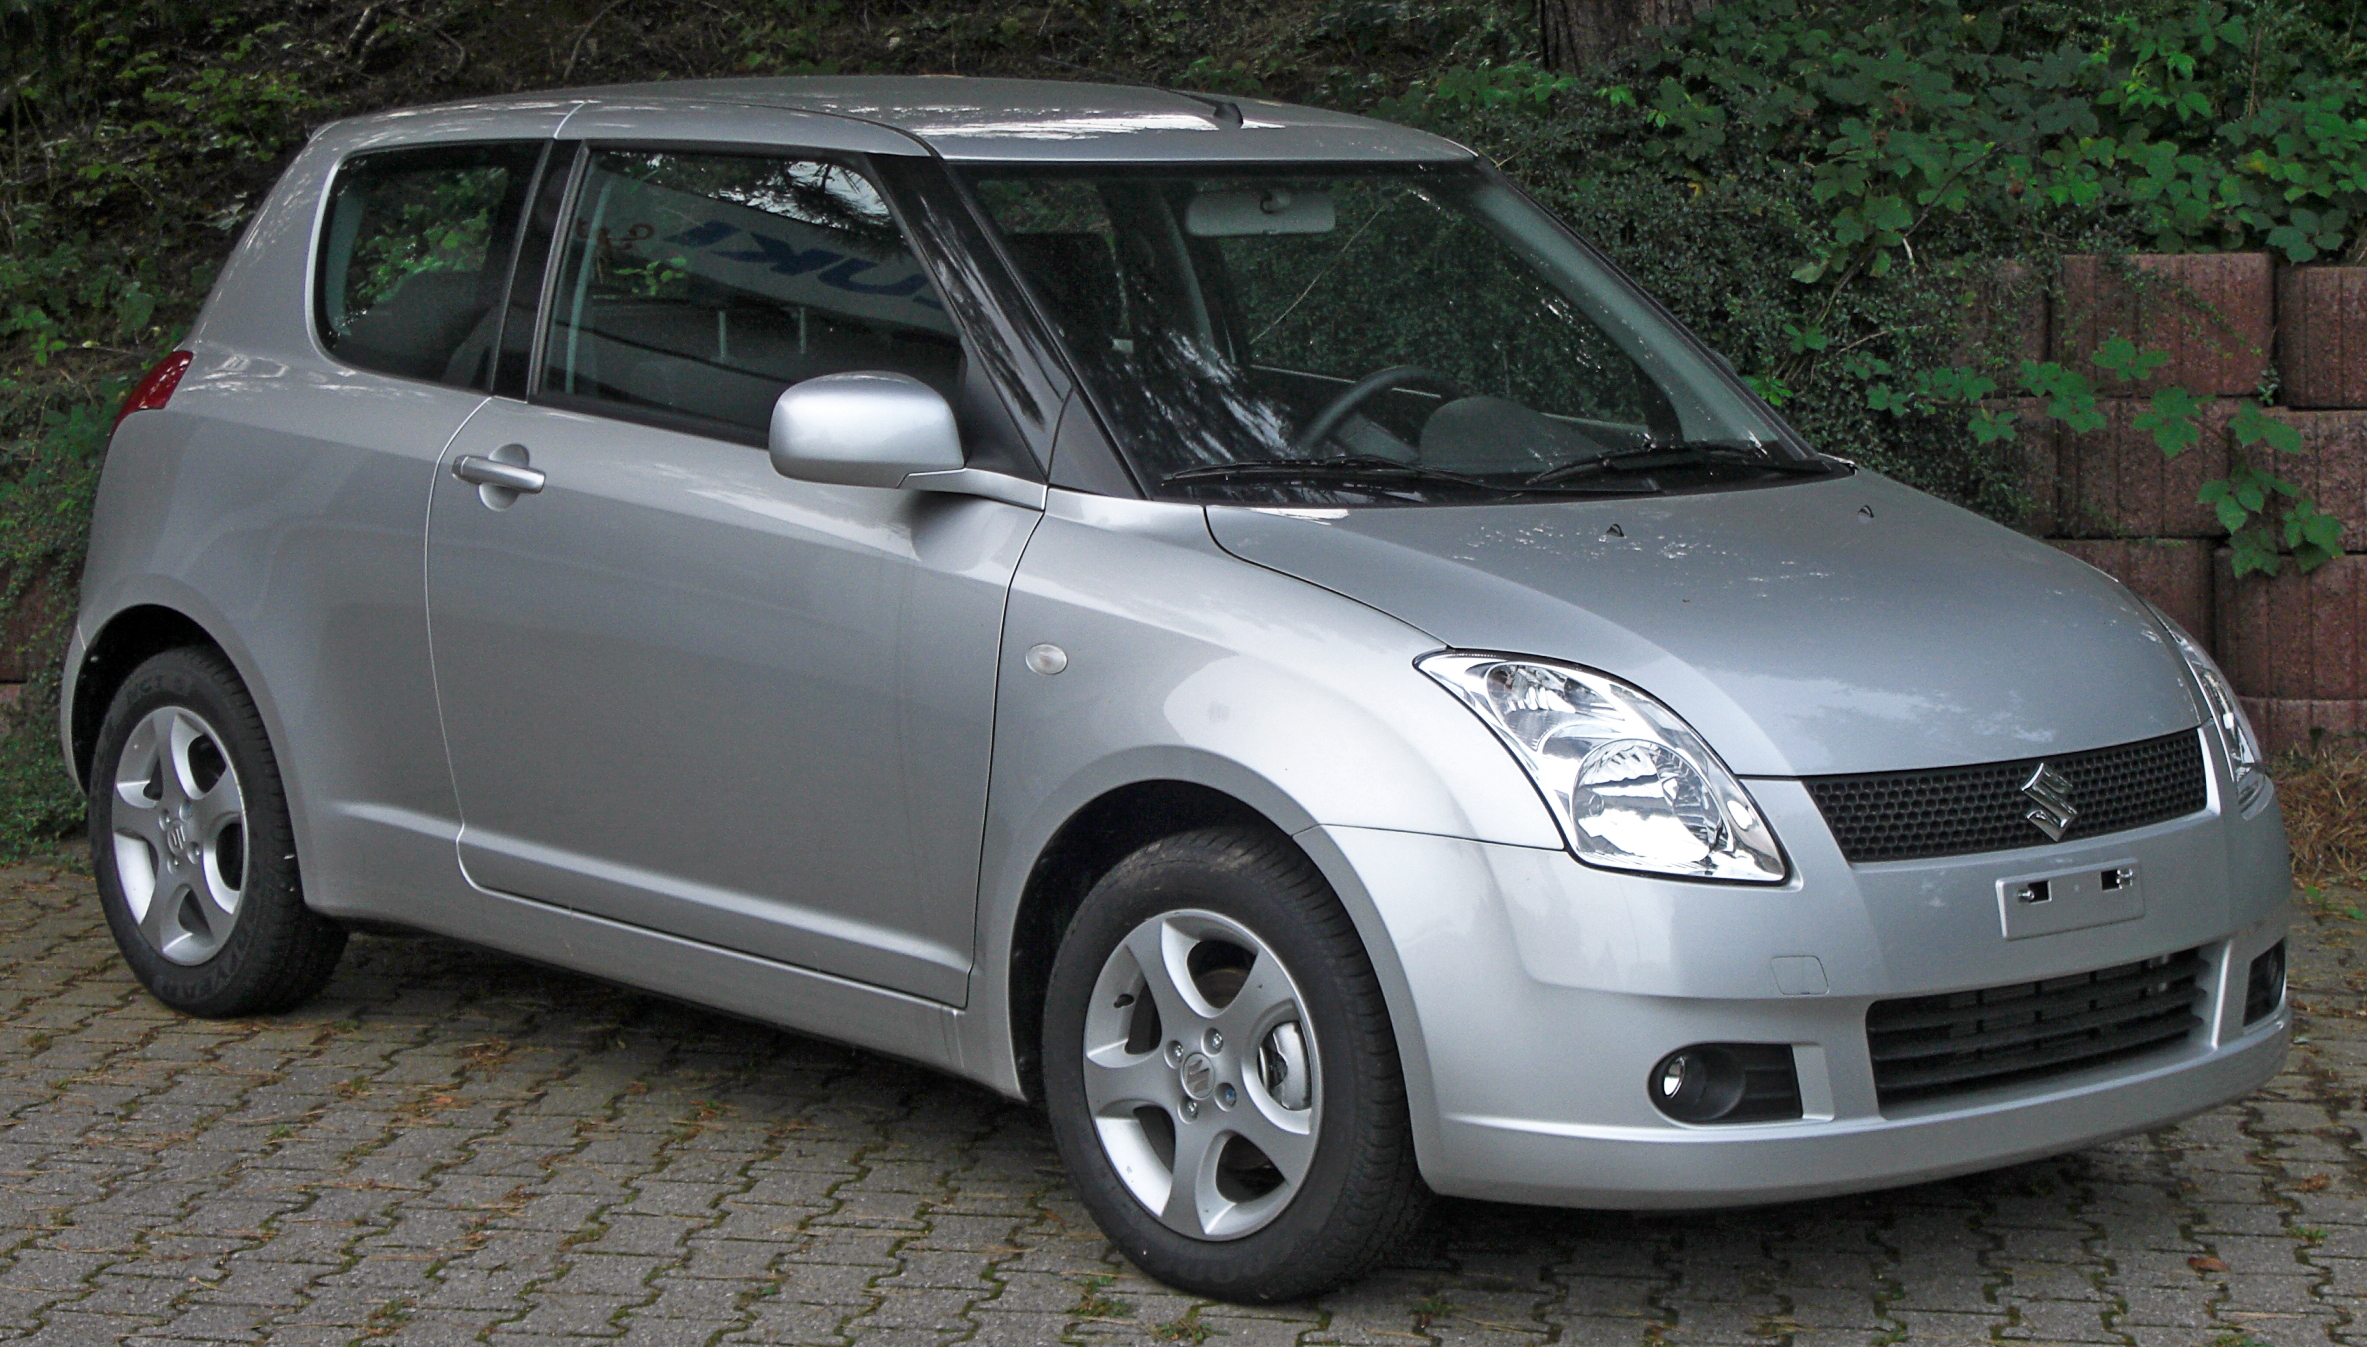 2008 suzuki swift iv pictures information and specs auto. Black Bedroom Furniture Sets. Home Design Ideas